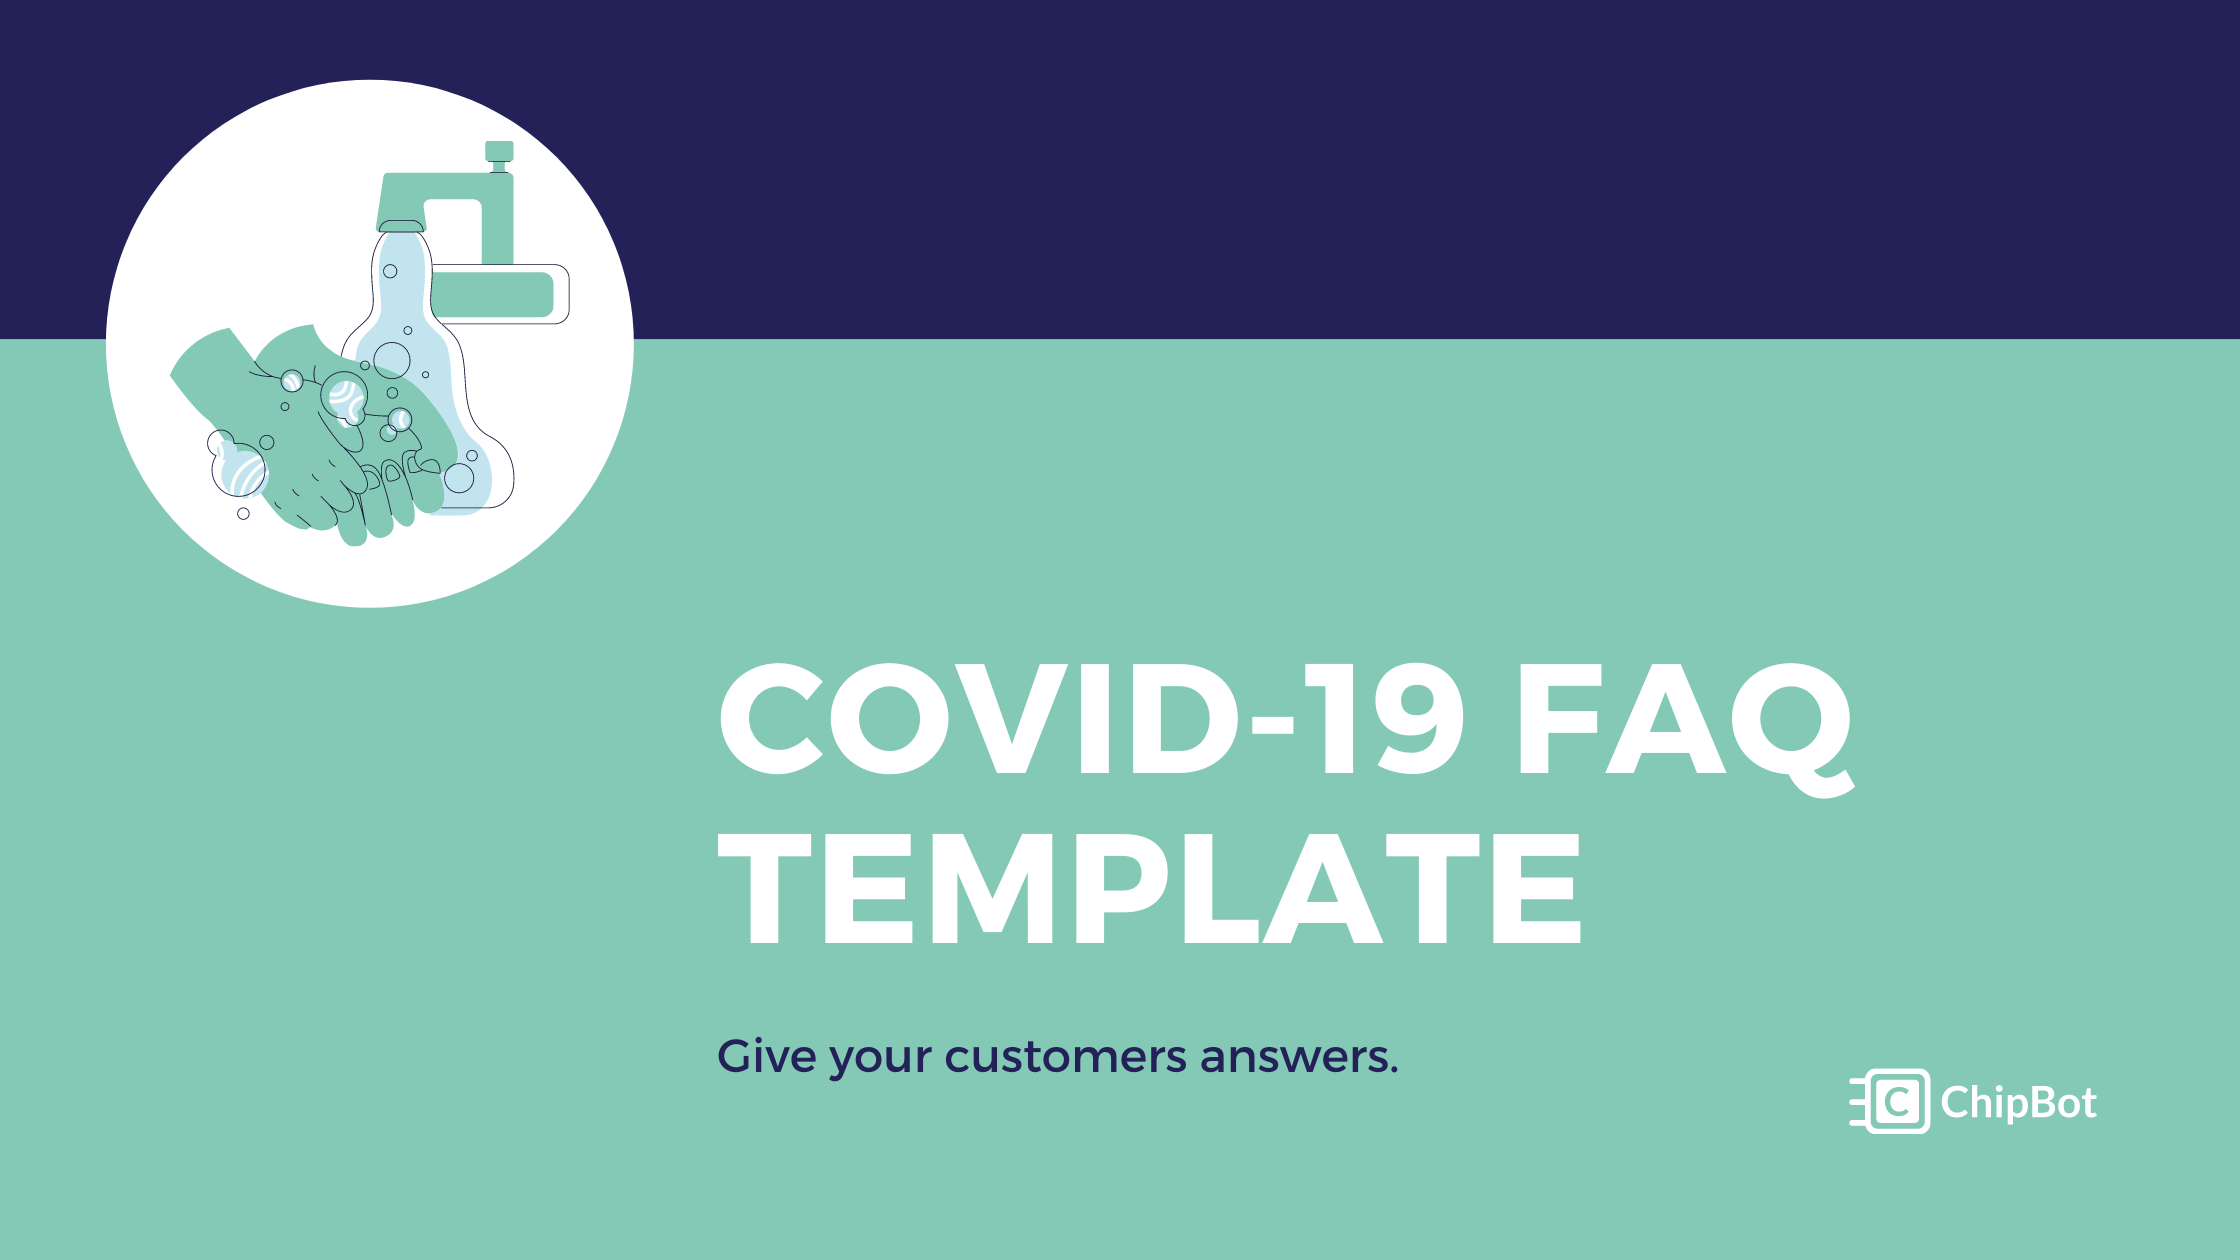 Covid-19 FAQ Template for your Customers